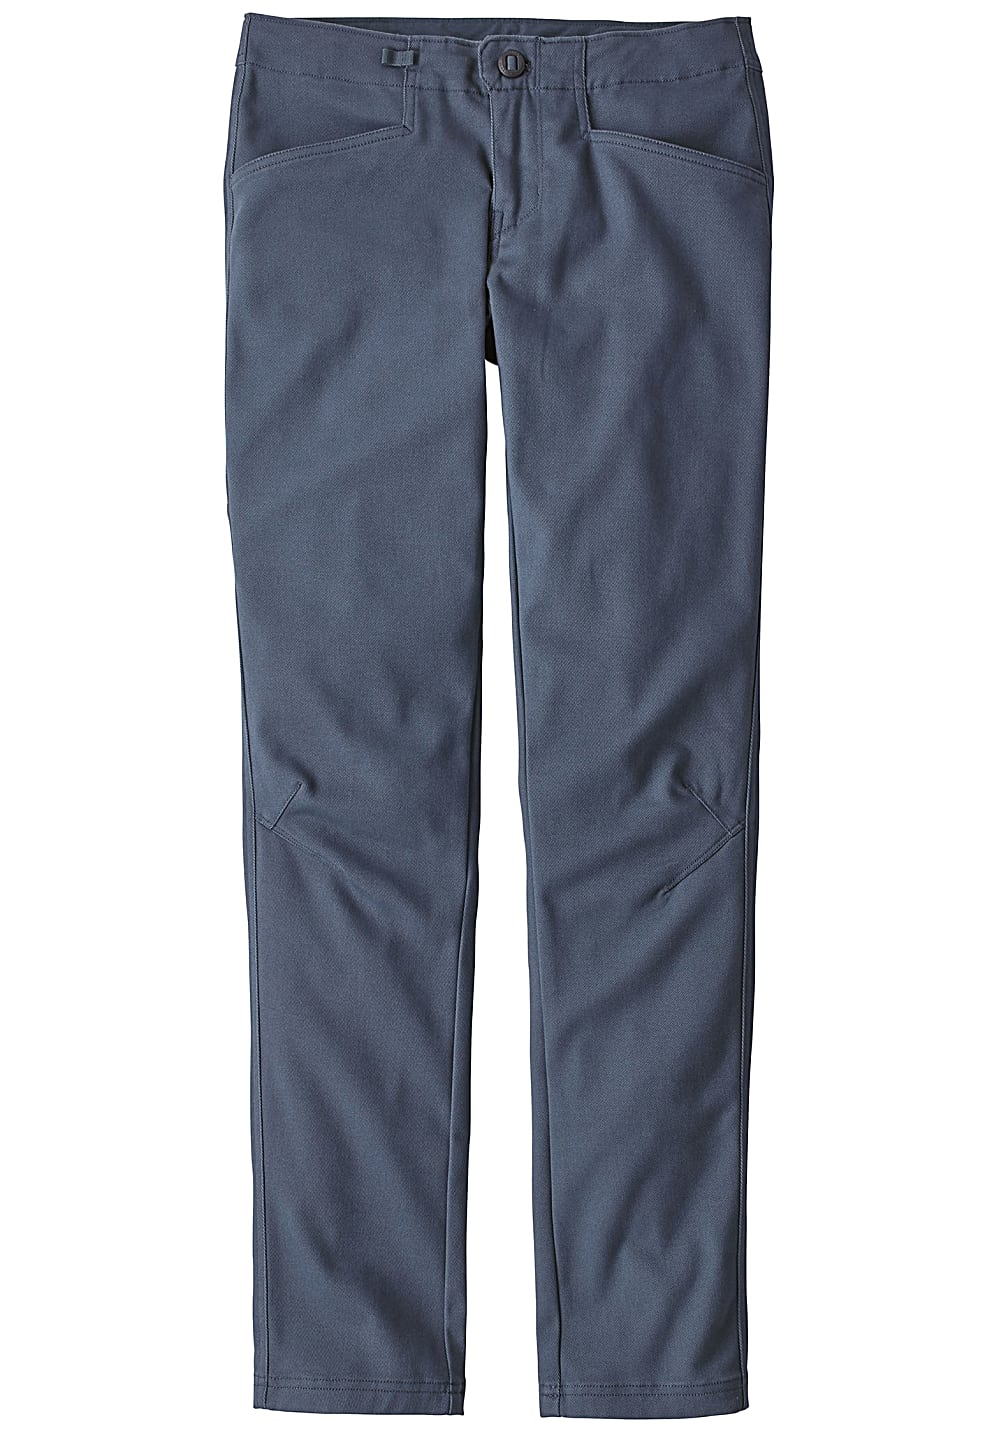 Patagonia Escala Rock - Outdoorhose für Damen - Blau